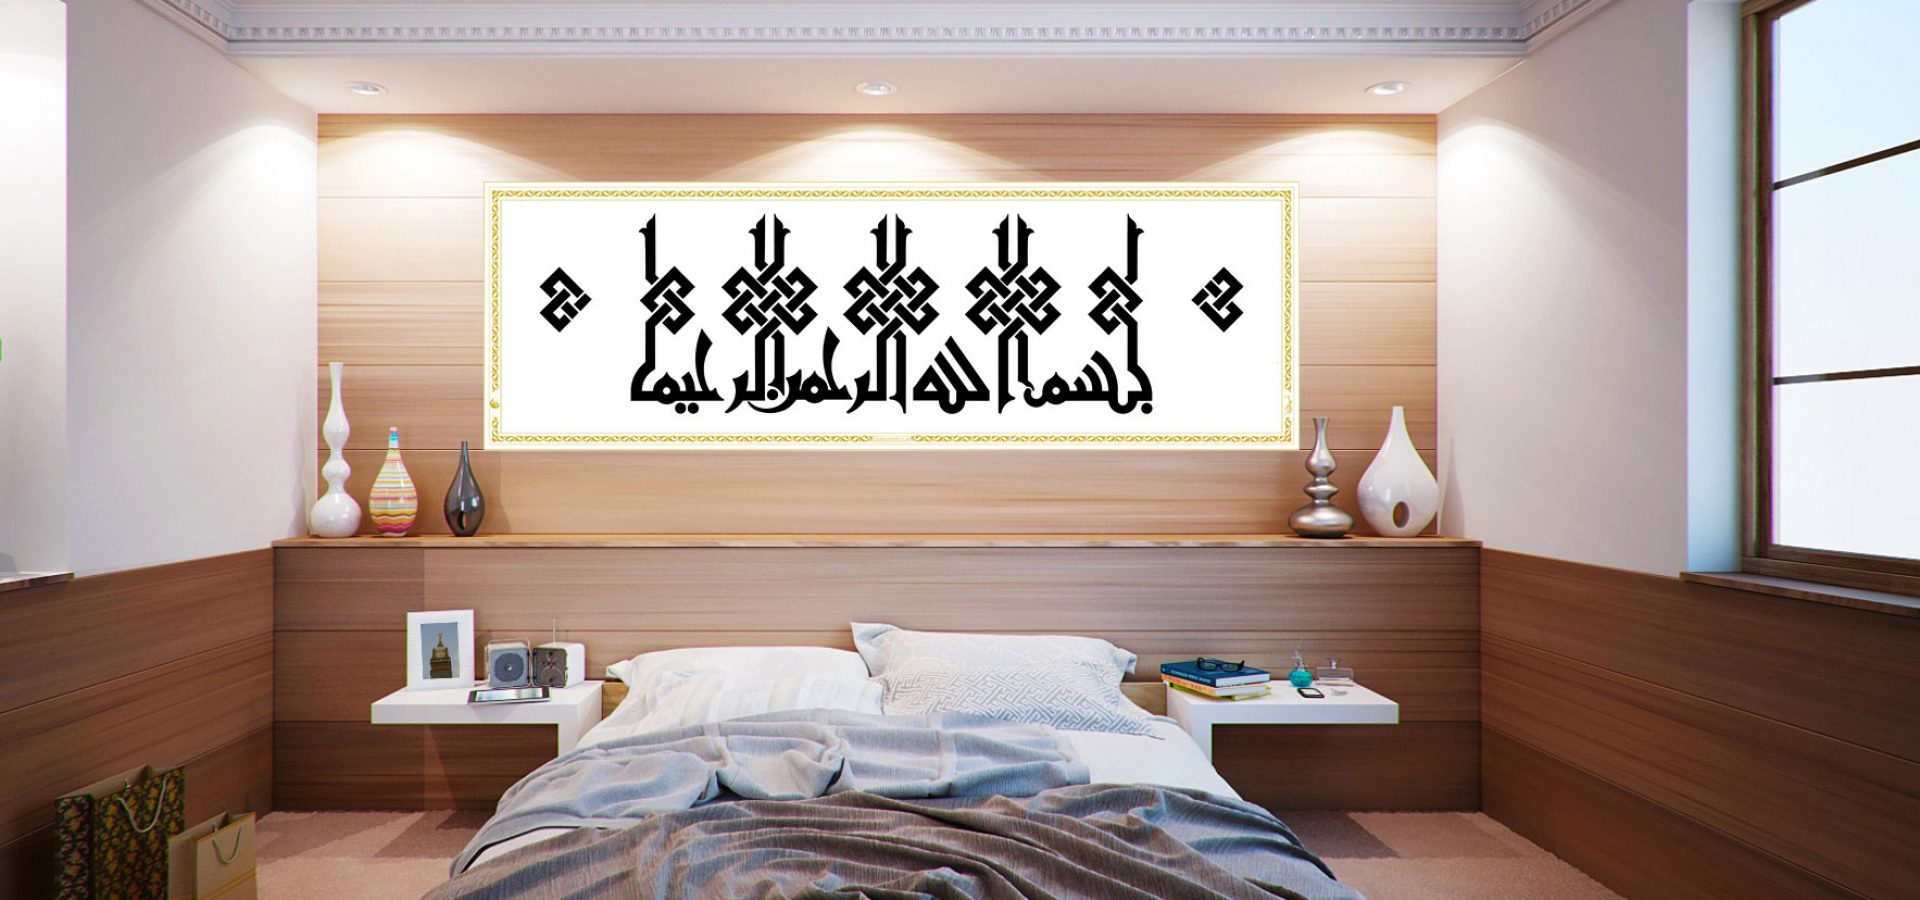 Masjid's Artwork design - Bismillah in Diamond Shape. Available in (1) Black Text/Media Background